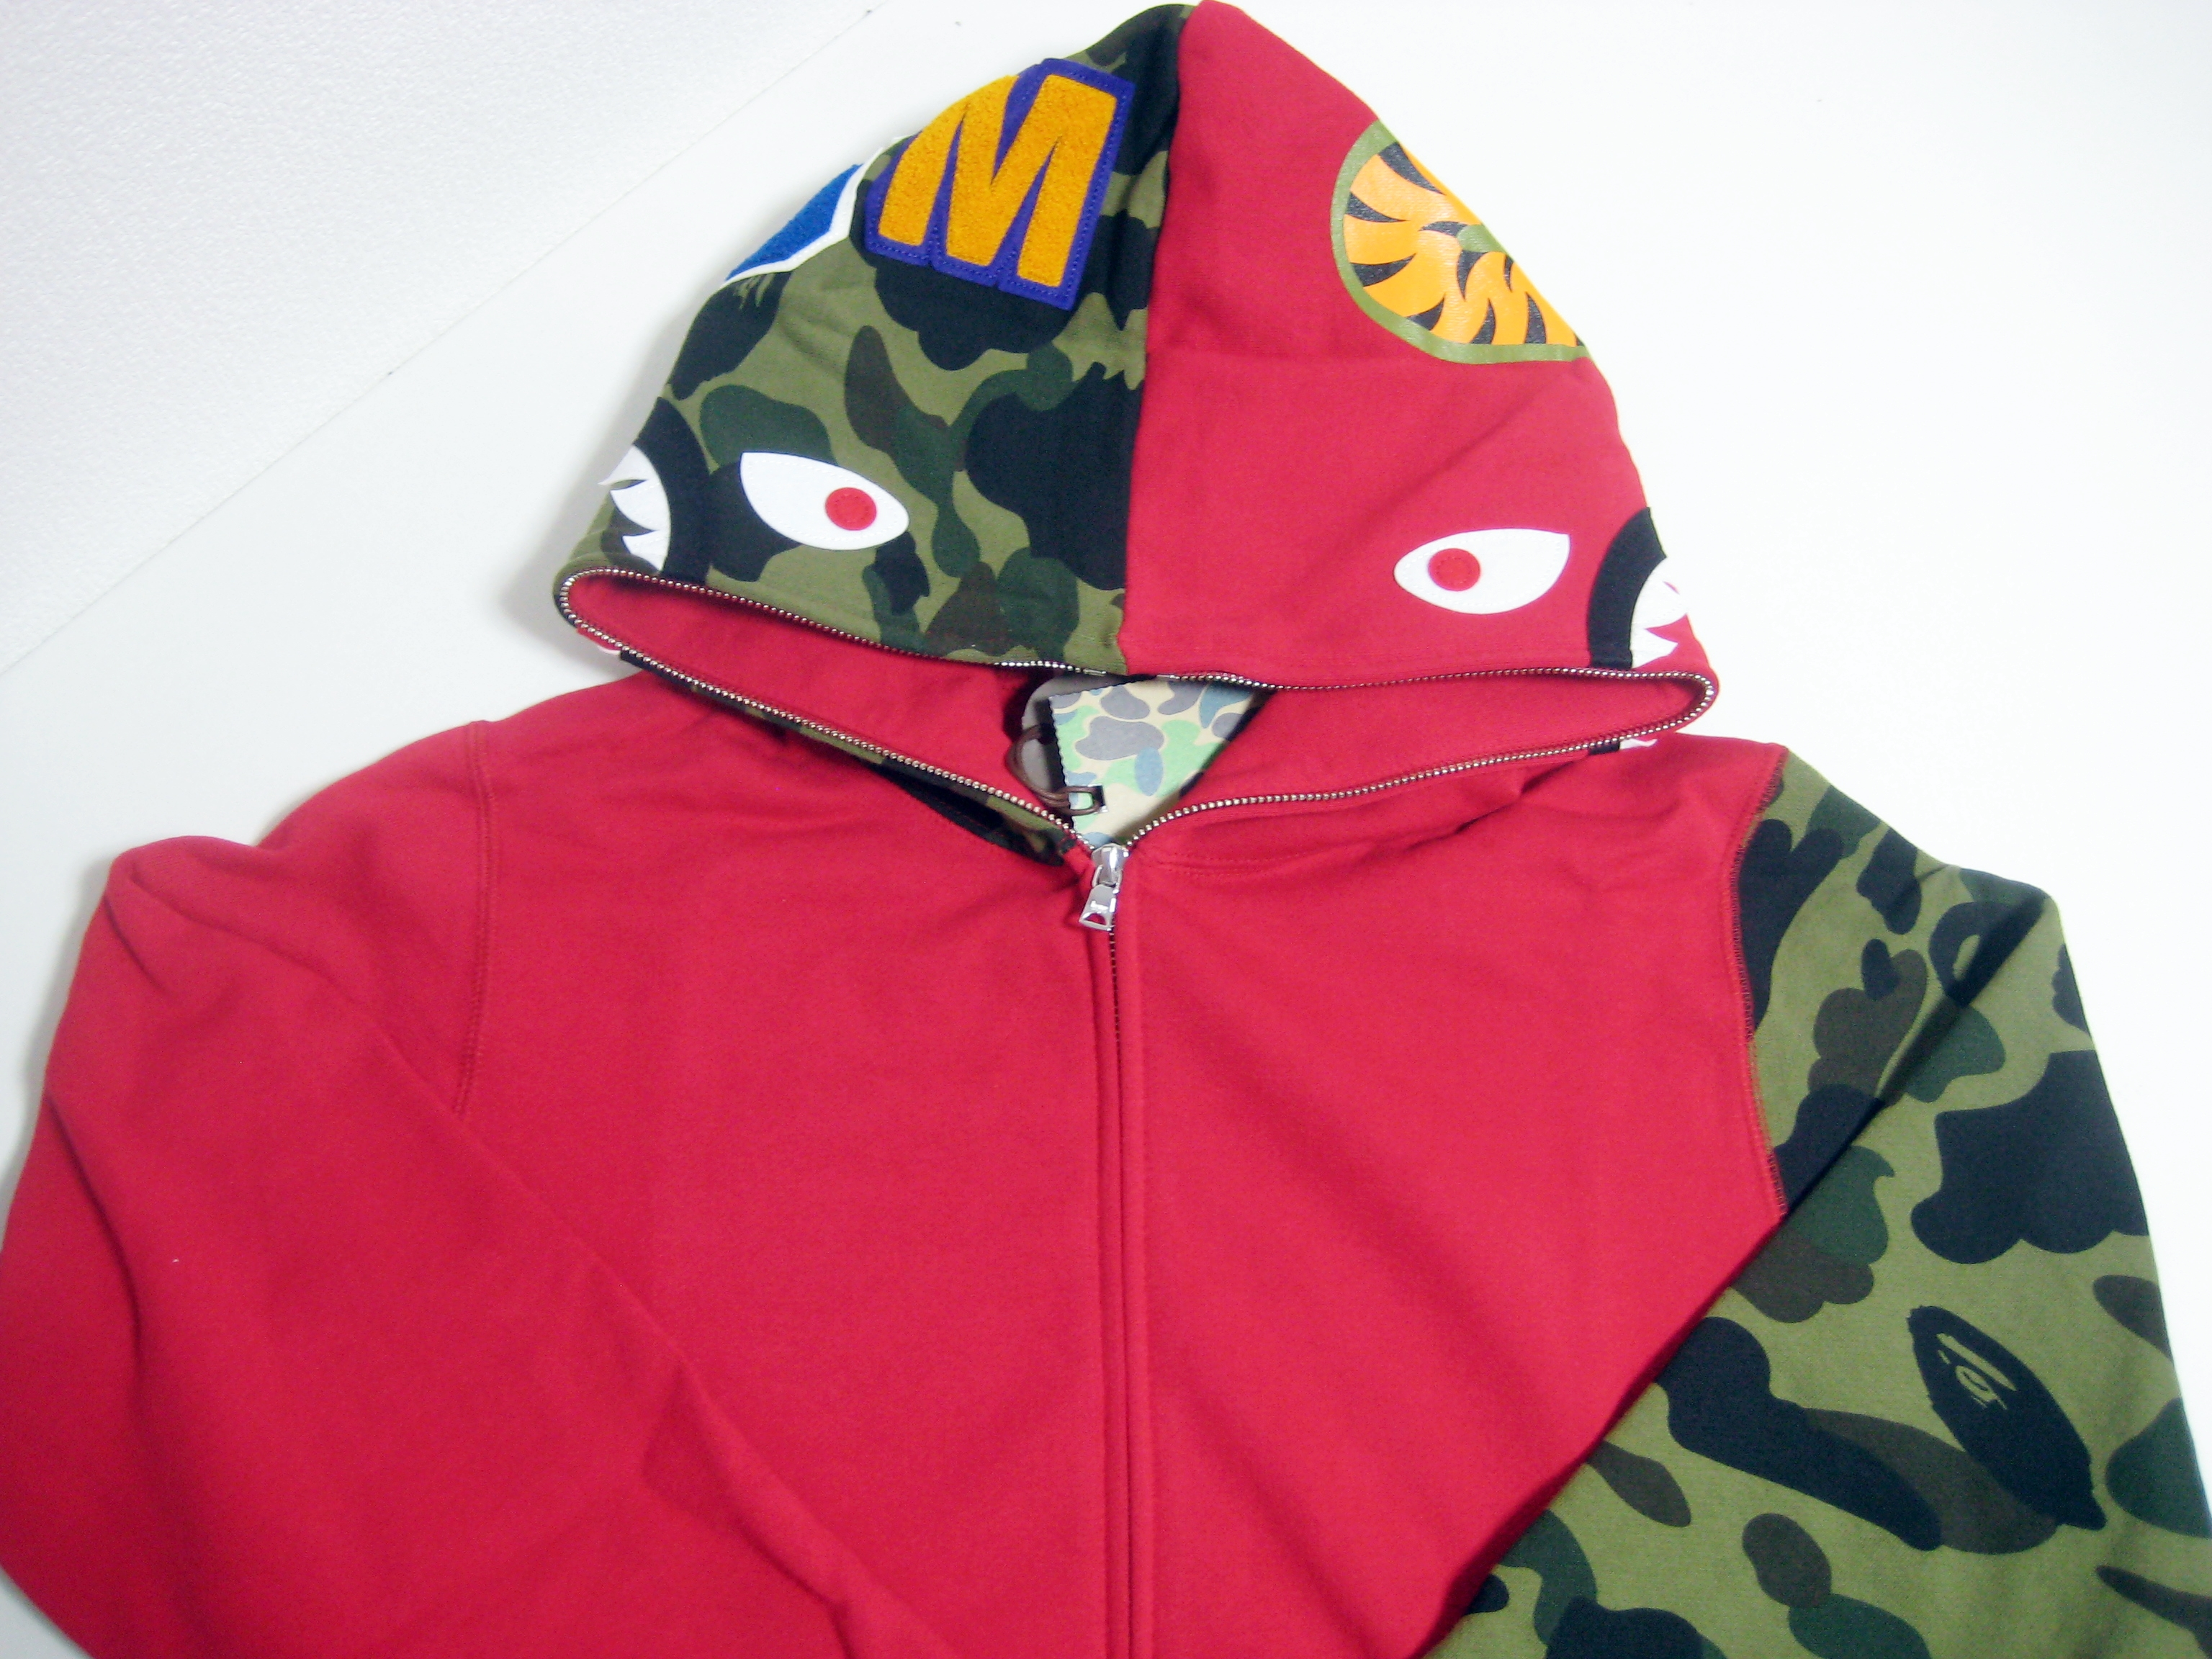 9a9c3dd4 Bape ×. A BATHING APE BAPE SHARK FULL ZIP HOODIE red L WGM sleeve camo made  in Japan